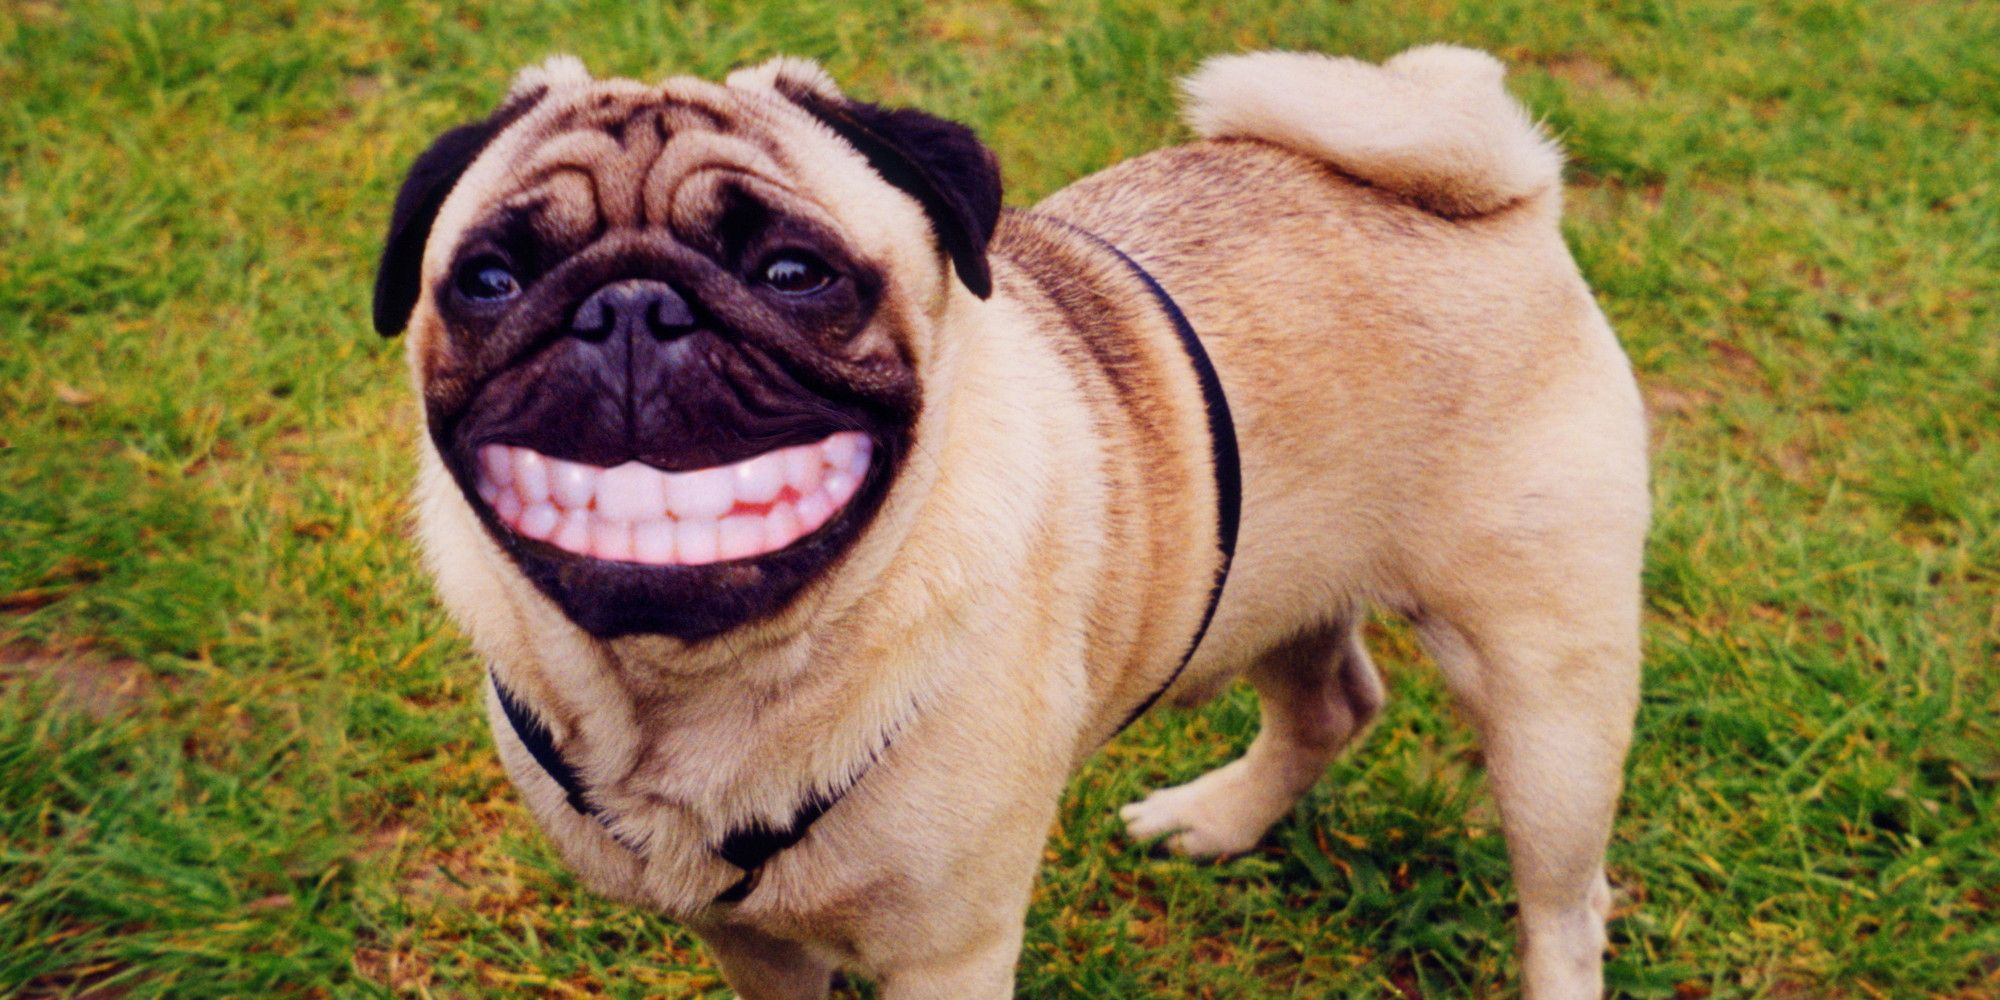 pug pooping dogs crazy pooping habits explained at last for dogs the o jays and of 539